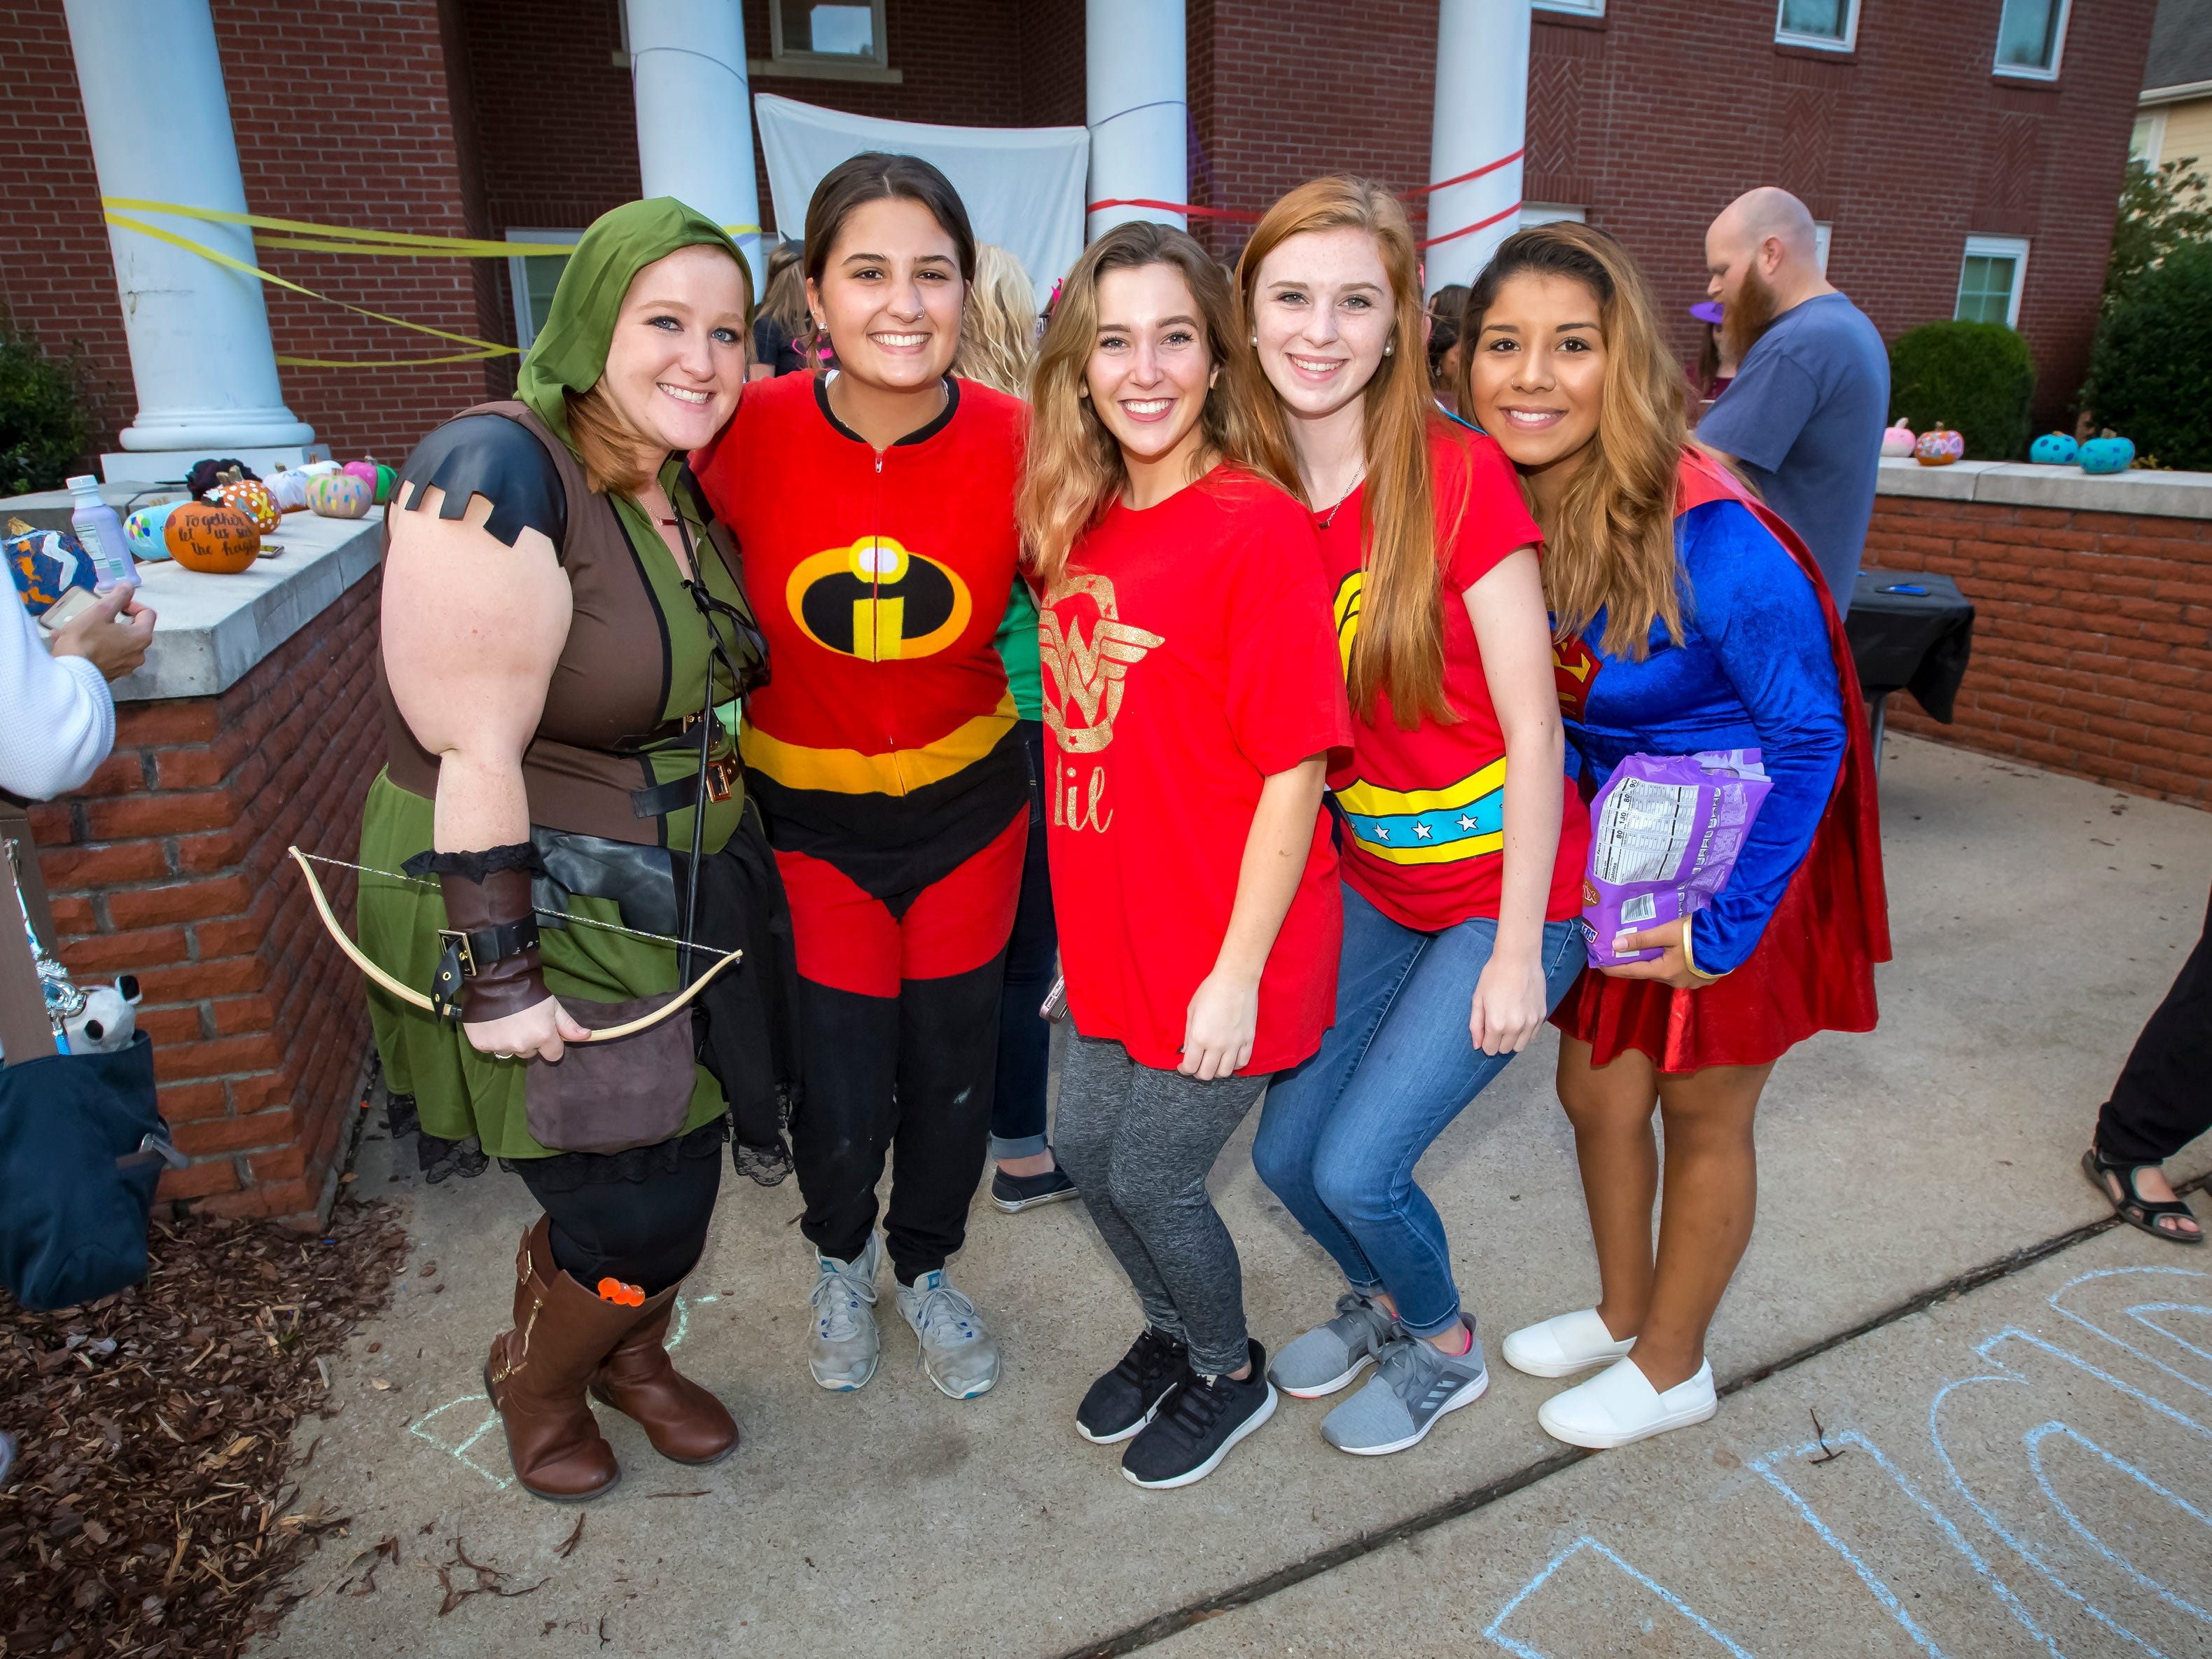 Greek Row Trick or Treat at MTSU on Tuesday, Oct. 30, 2018.